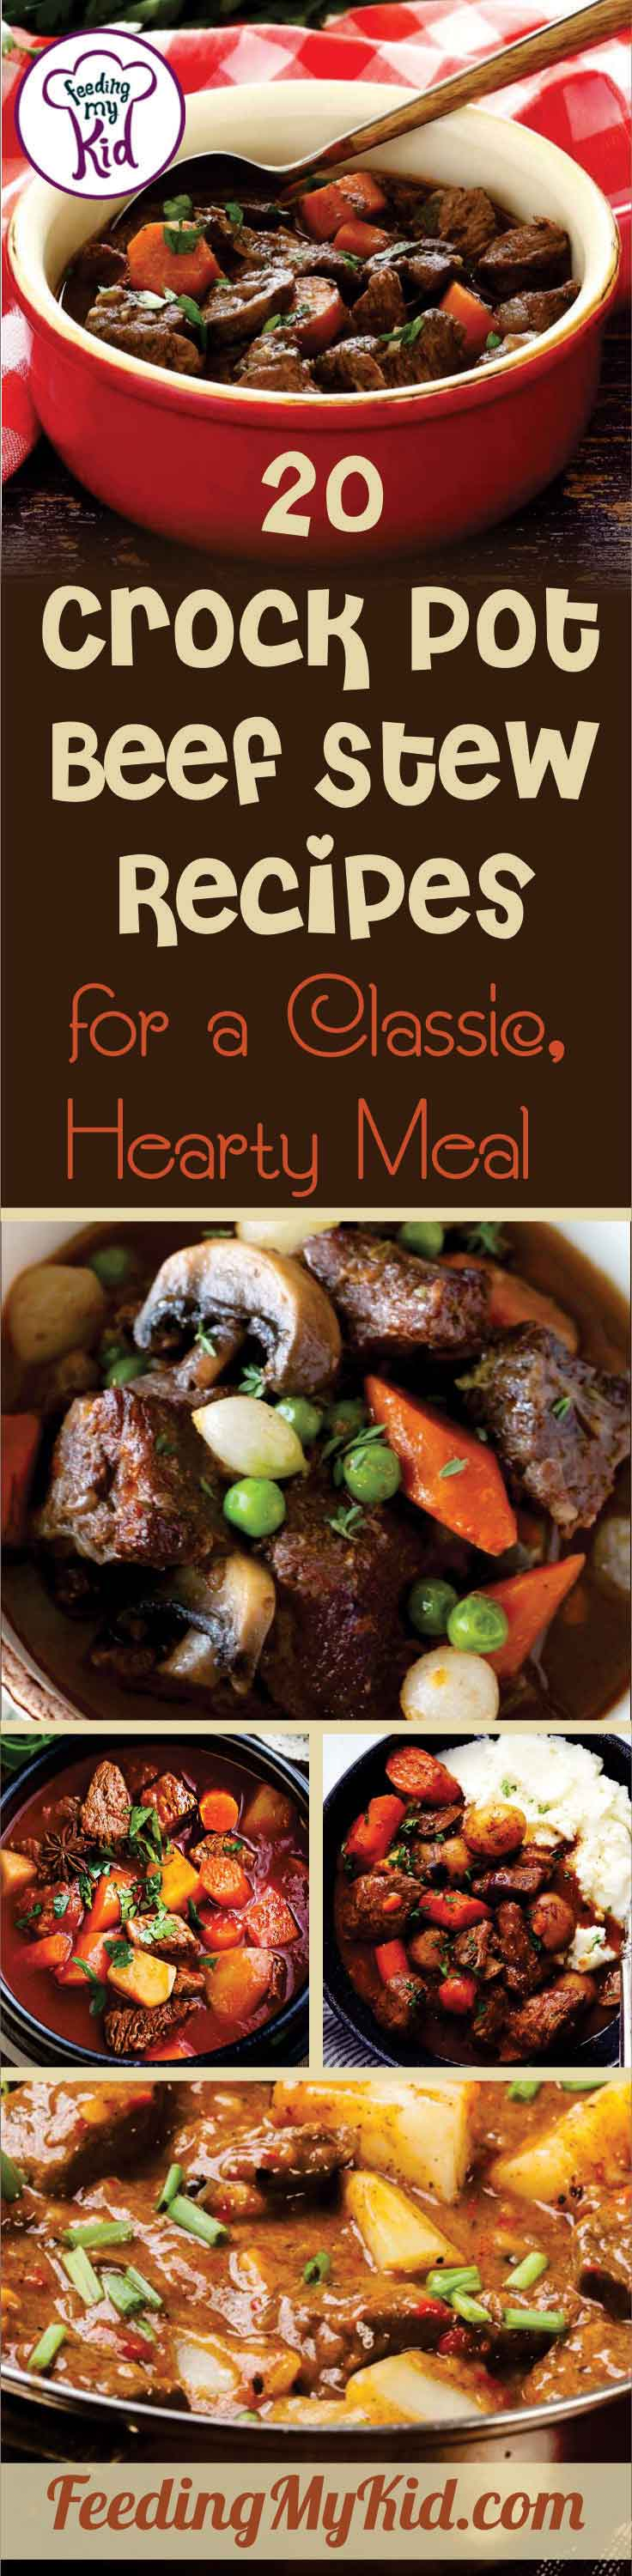 Classic beef stew in a crock pot! These crock pot beef stew recipes are hearty and filling after a long day. Super easy in your slow cooker!